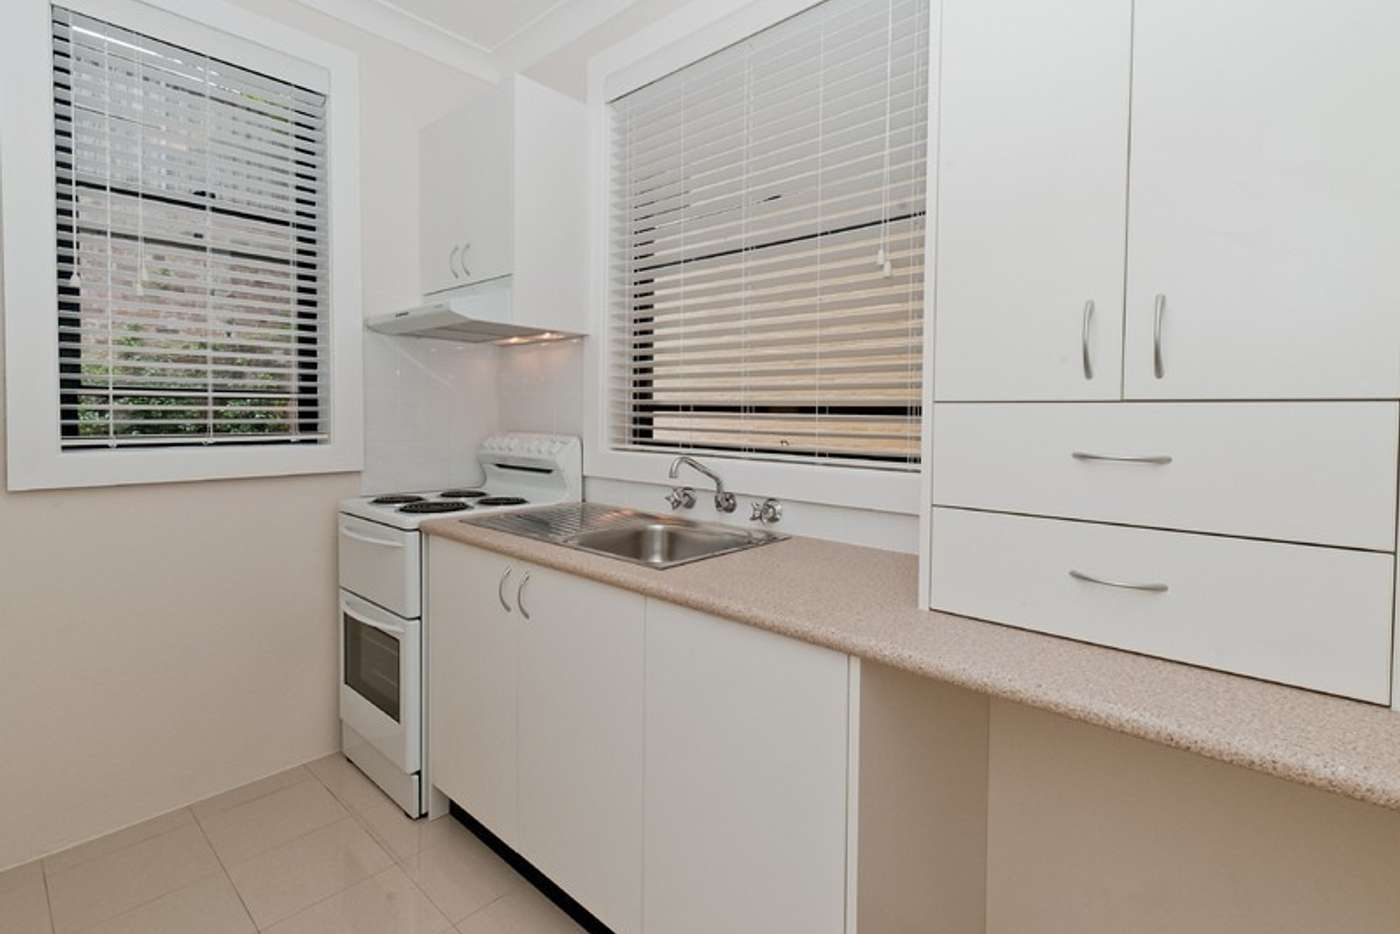 Main view of Homely studio listing, 3/35 Womerah Avenue, Darlinghurst NSW 2010